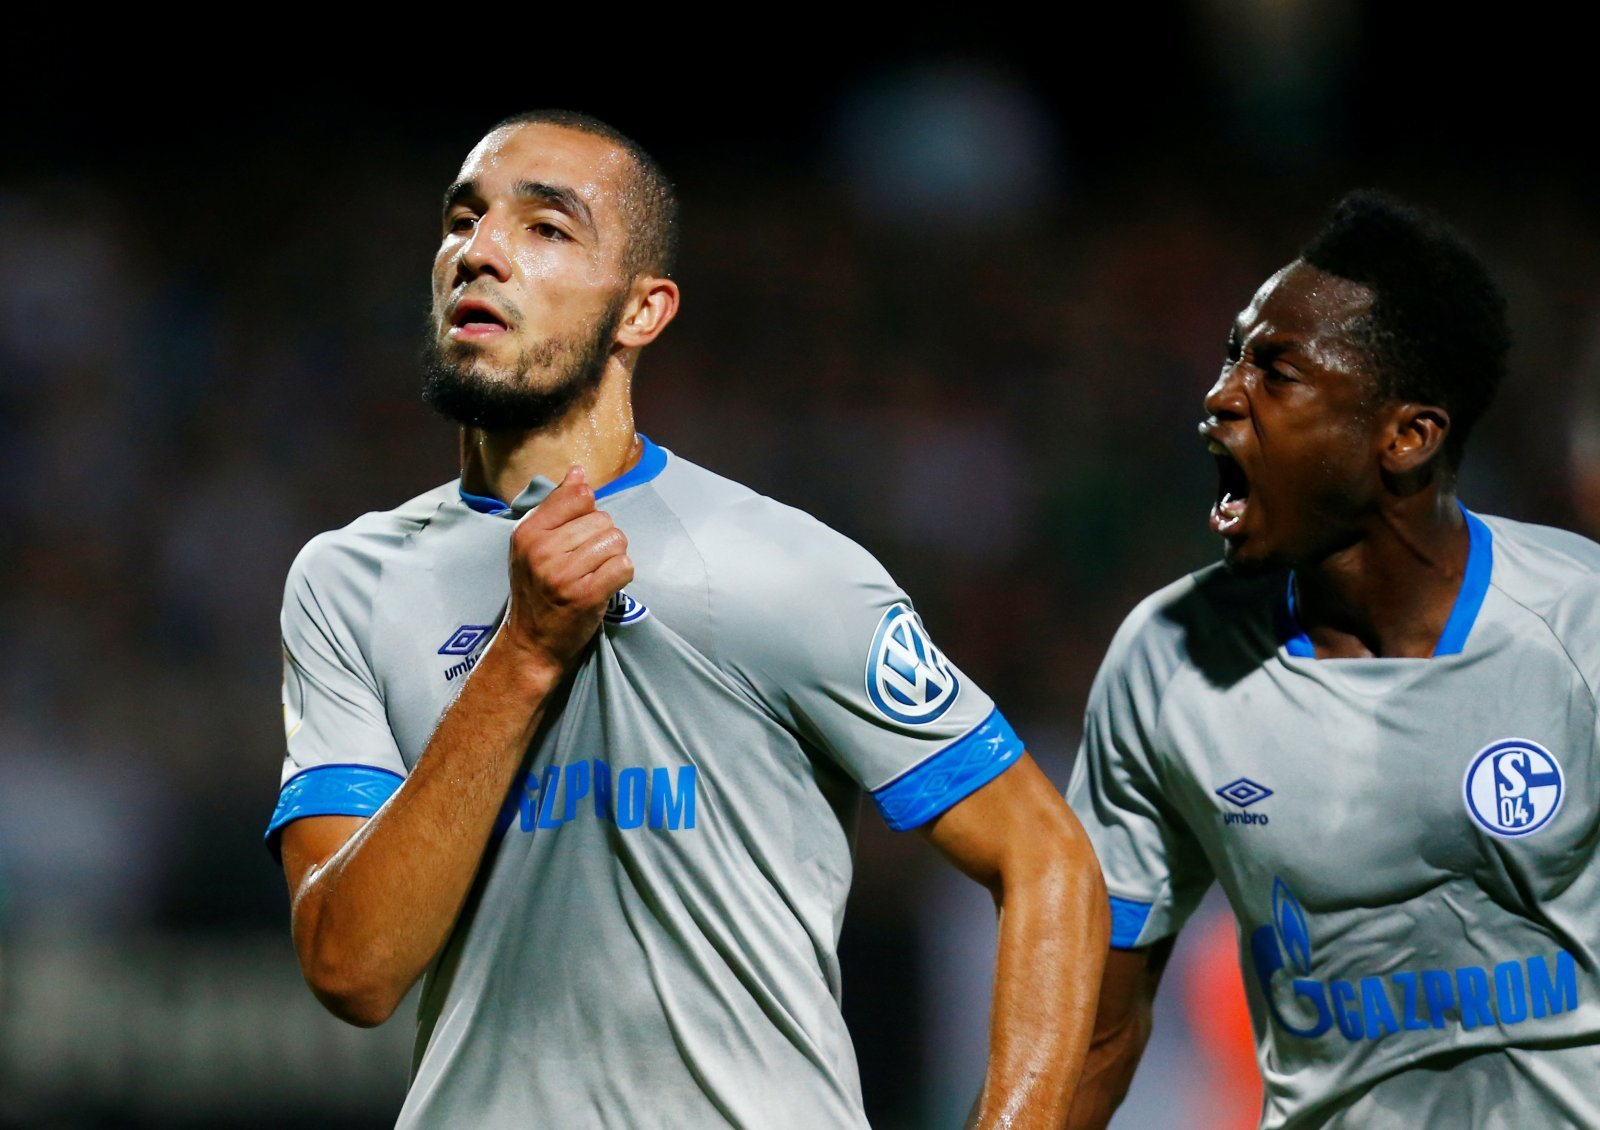 Opinion: Tottenham could find perfect replacement for Dembele by re-signing Nabil Bentaleb